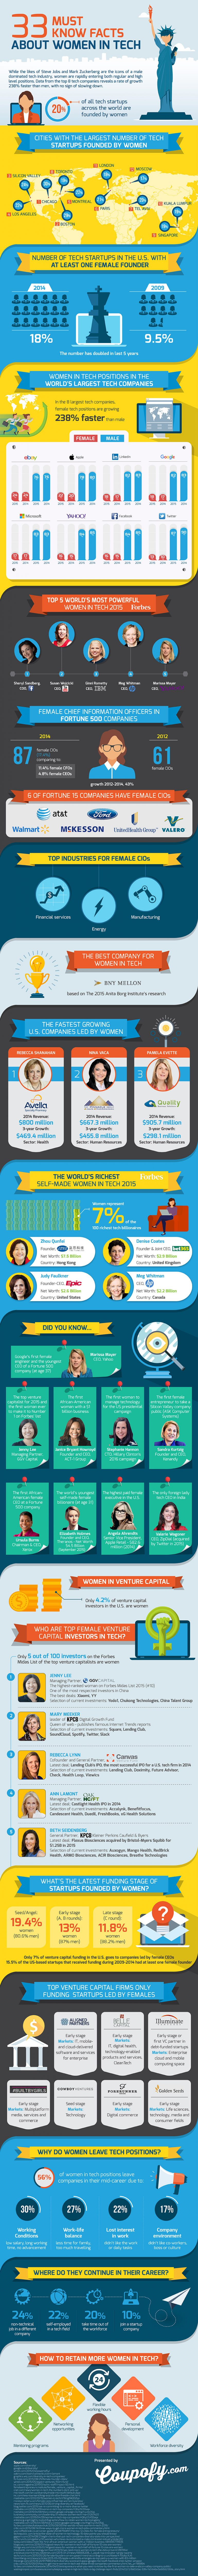 "Frauen in der Tech-Branche. (Grafik: <a href=""http://www.coupofy.com/blog/infographics/the-238-percent-faster-growth-of-women-in-the-tech-industry-than-men-infographic"">Coupofy</a>)"